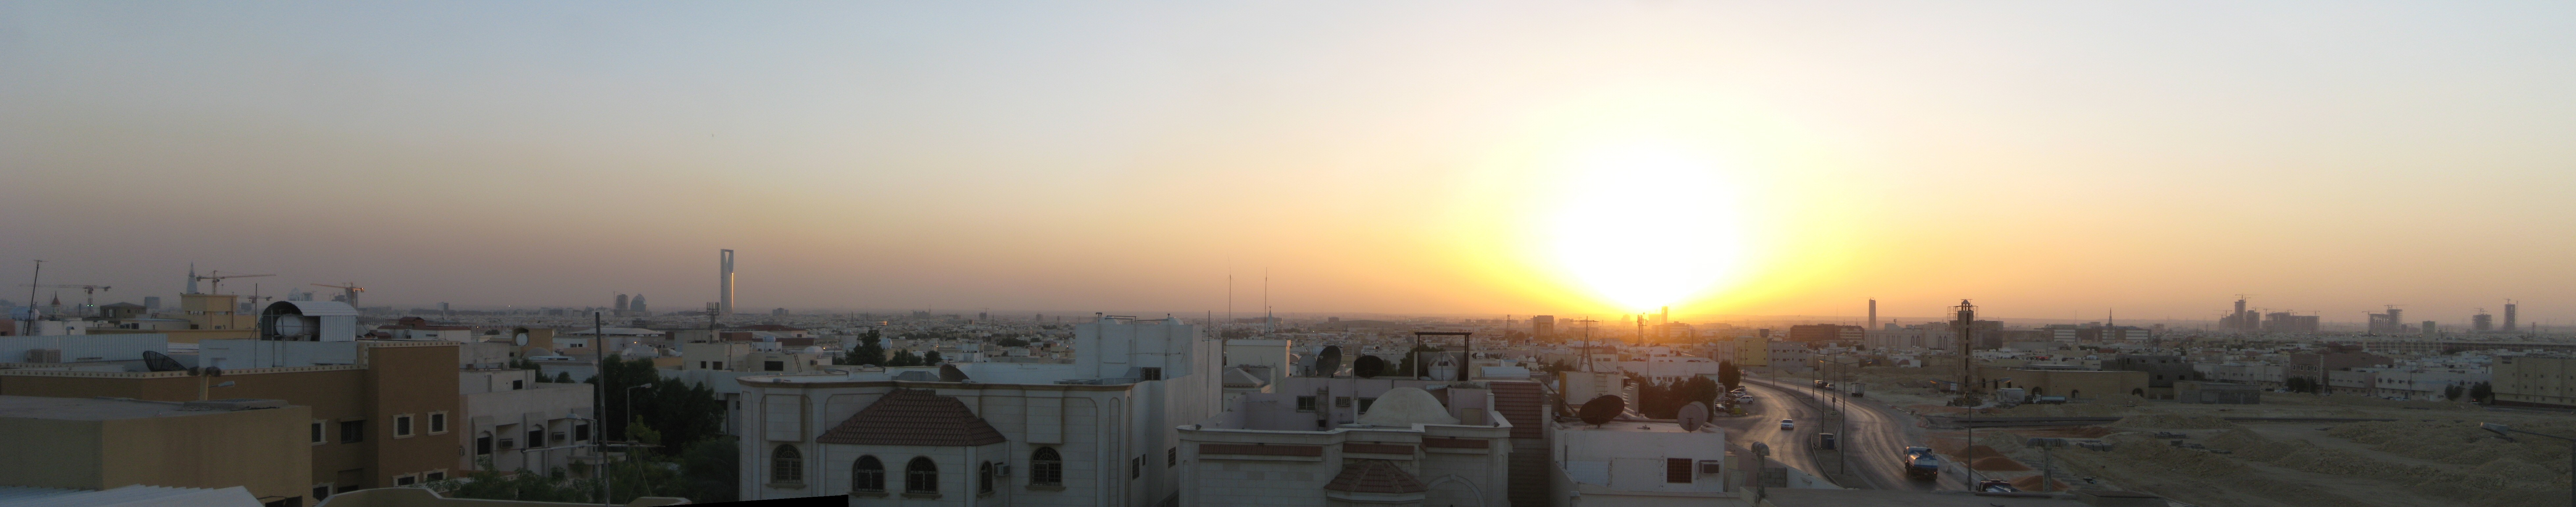 sunrise cityscapes panorama saudi HD Wallpaper